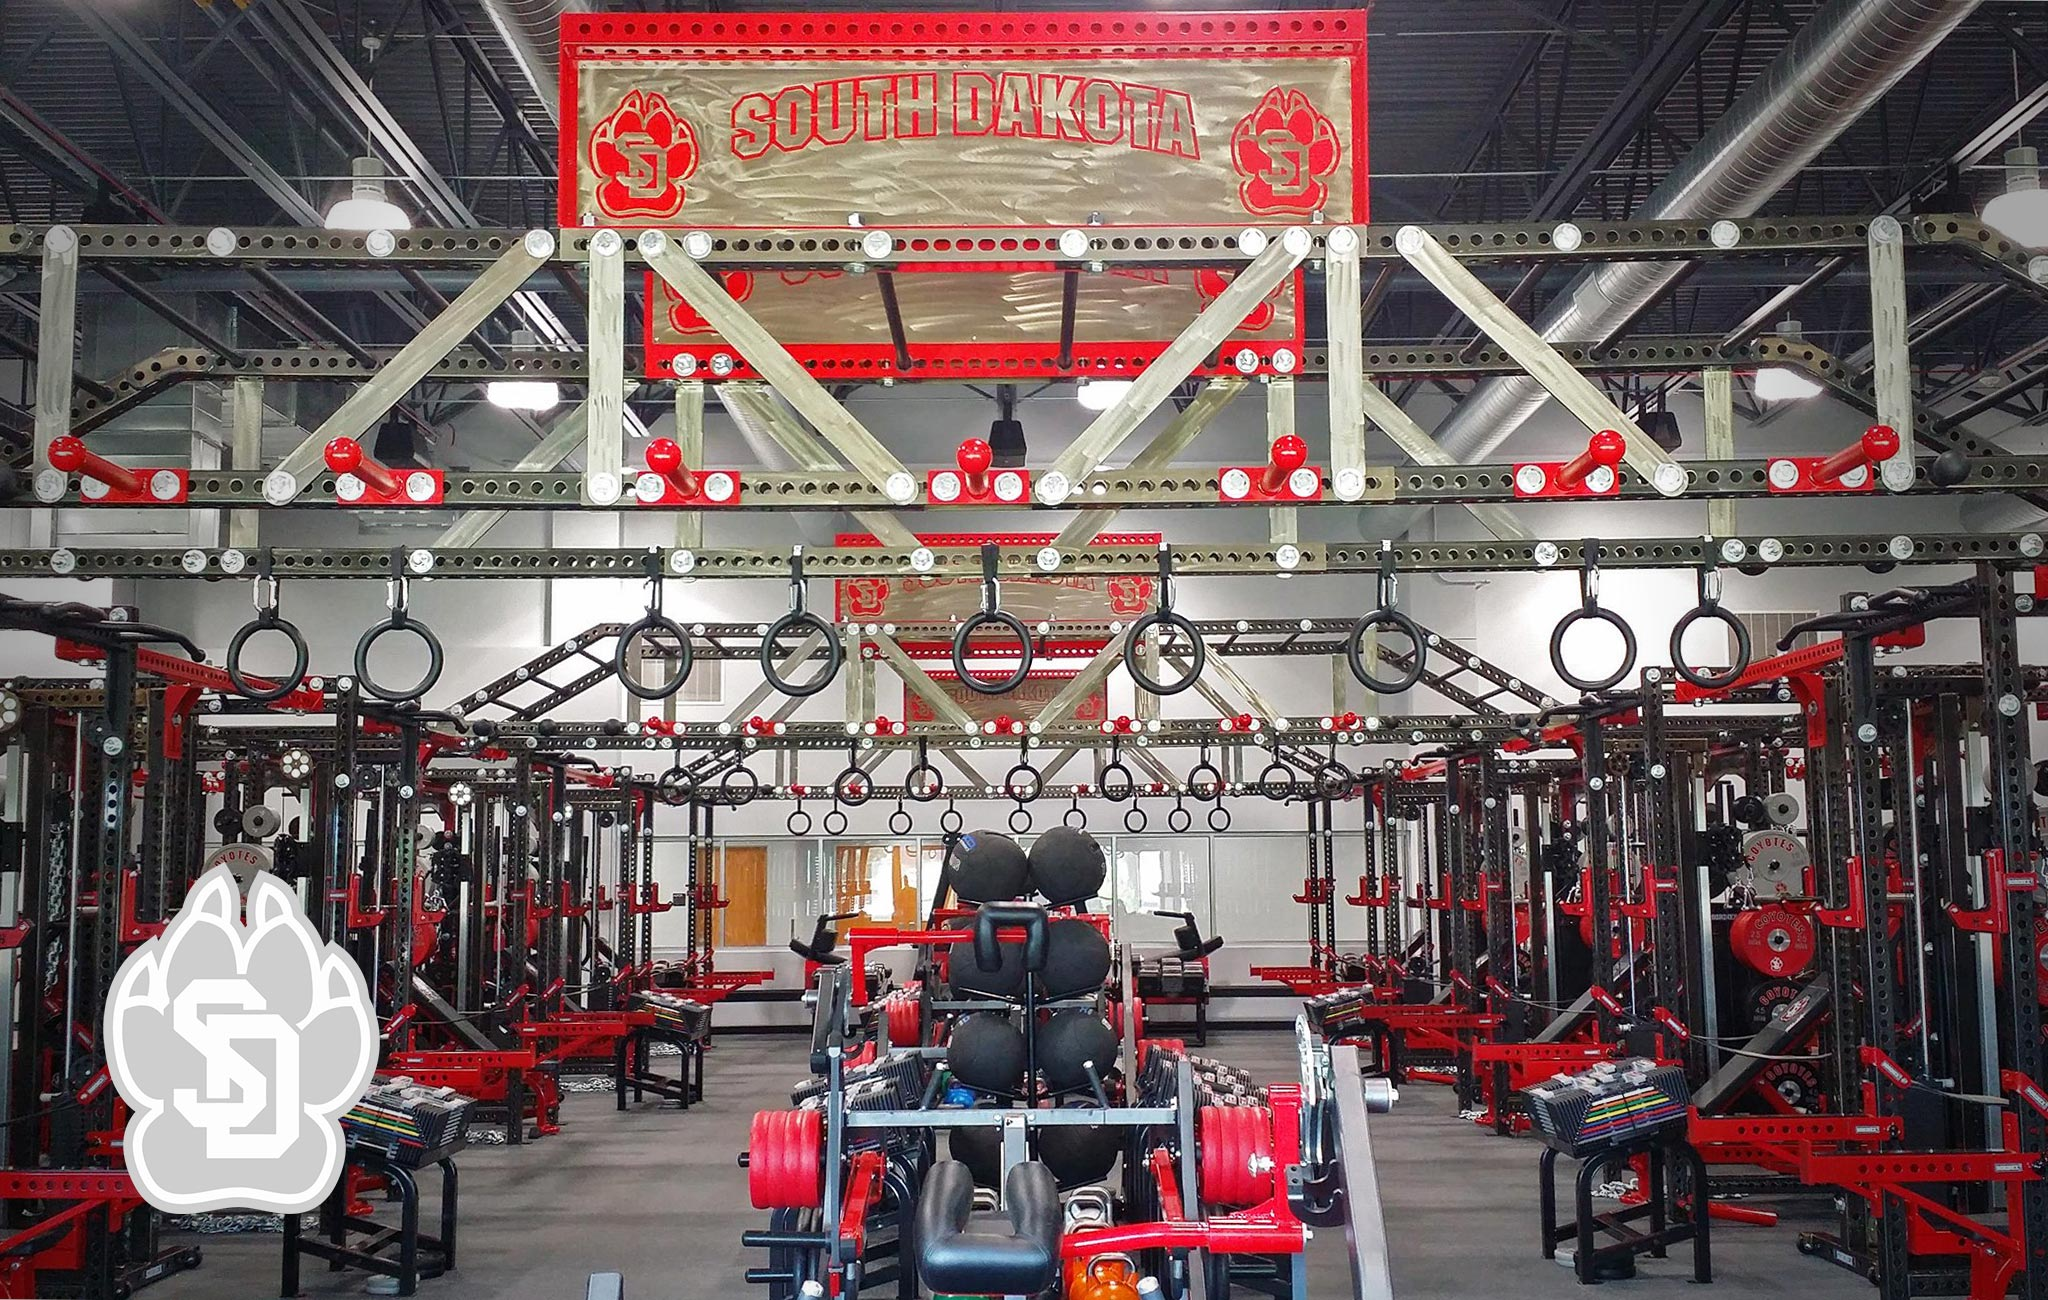 University of South Dakota Sorinex strength and conditioning facility